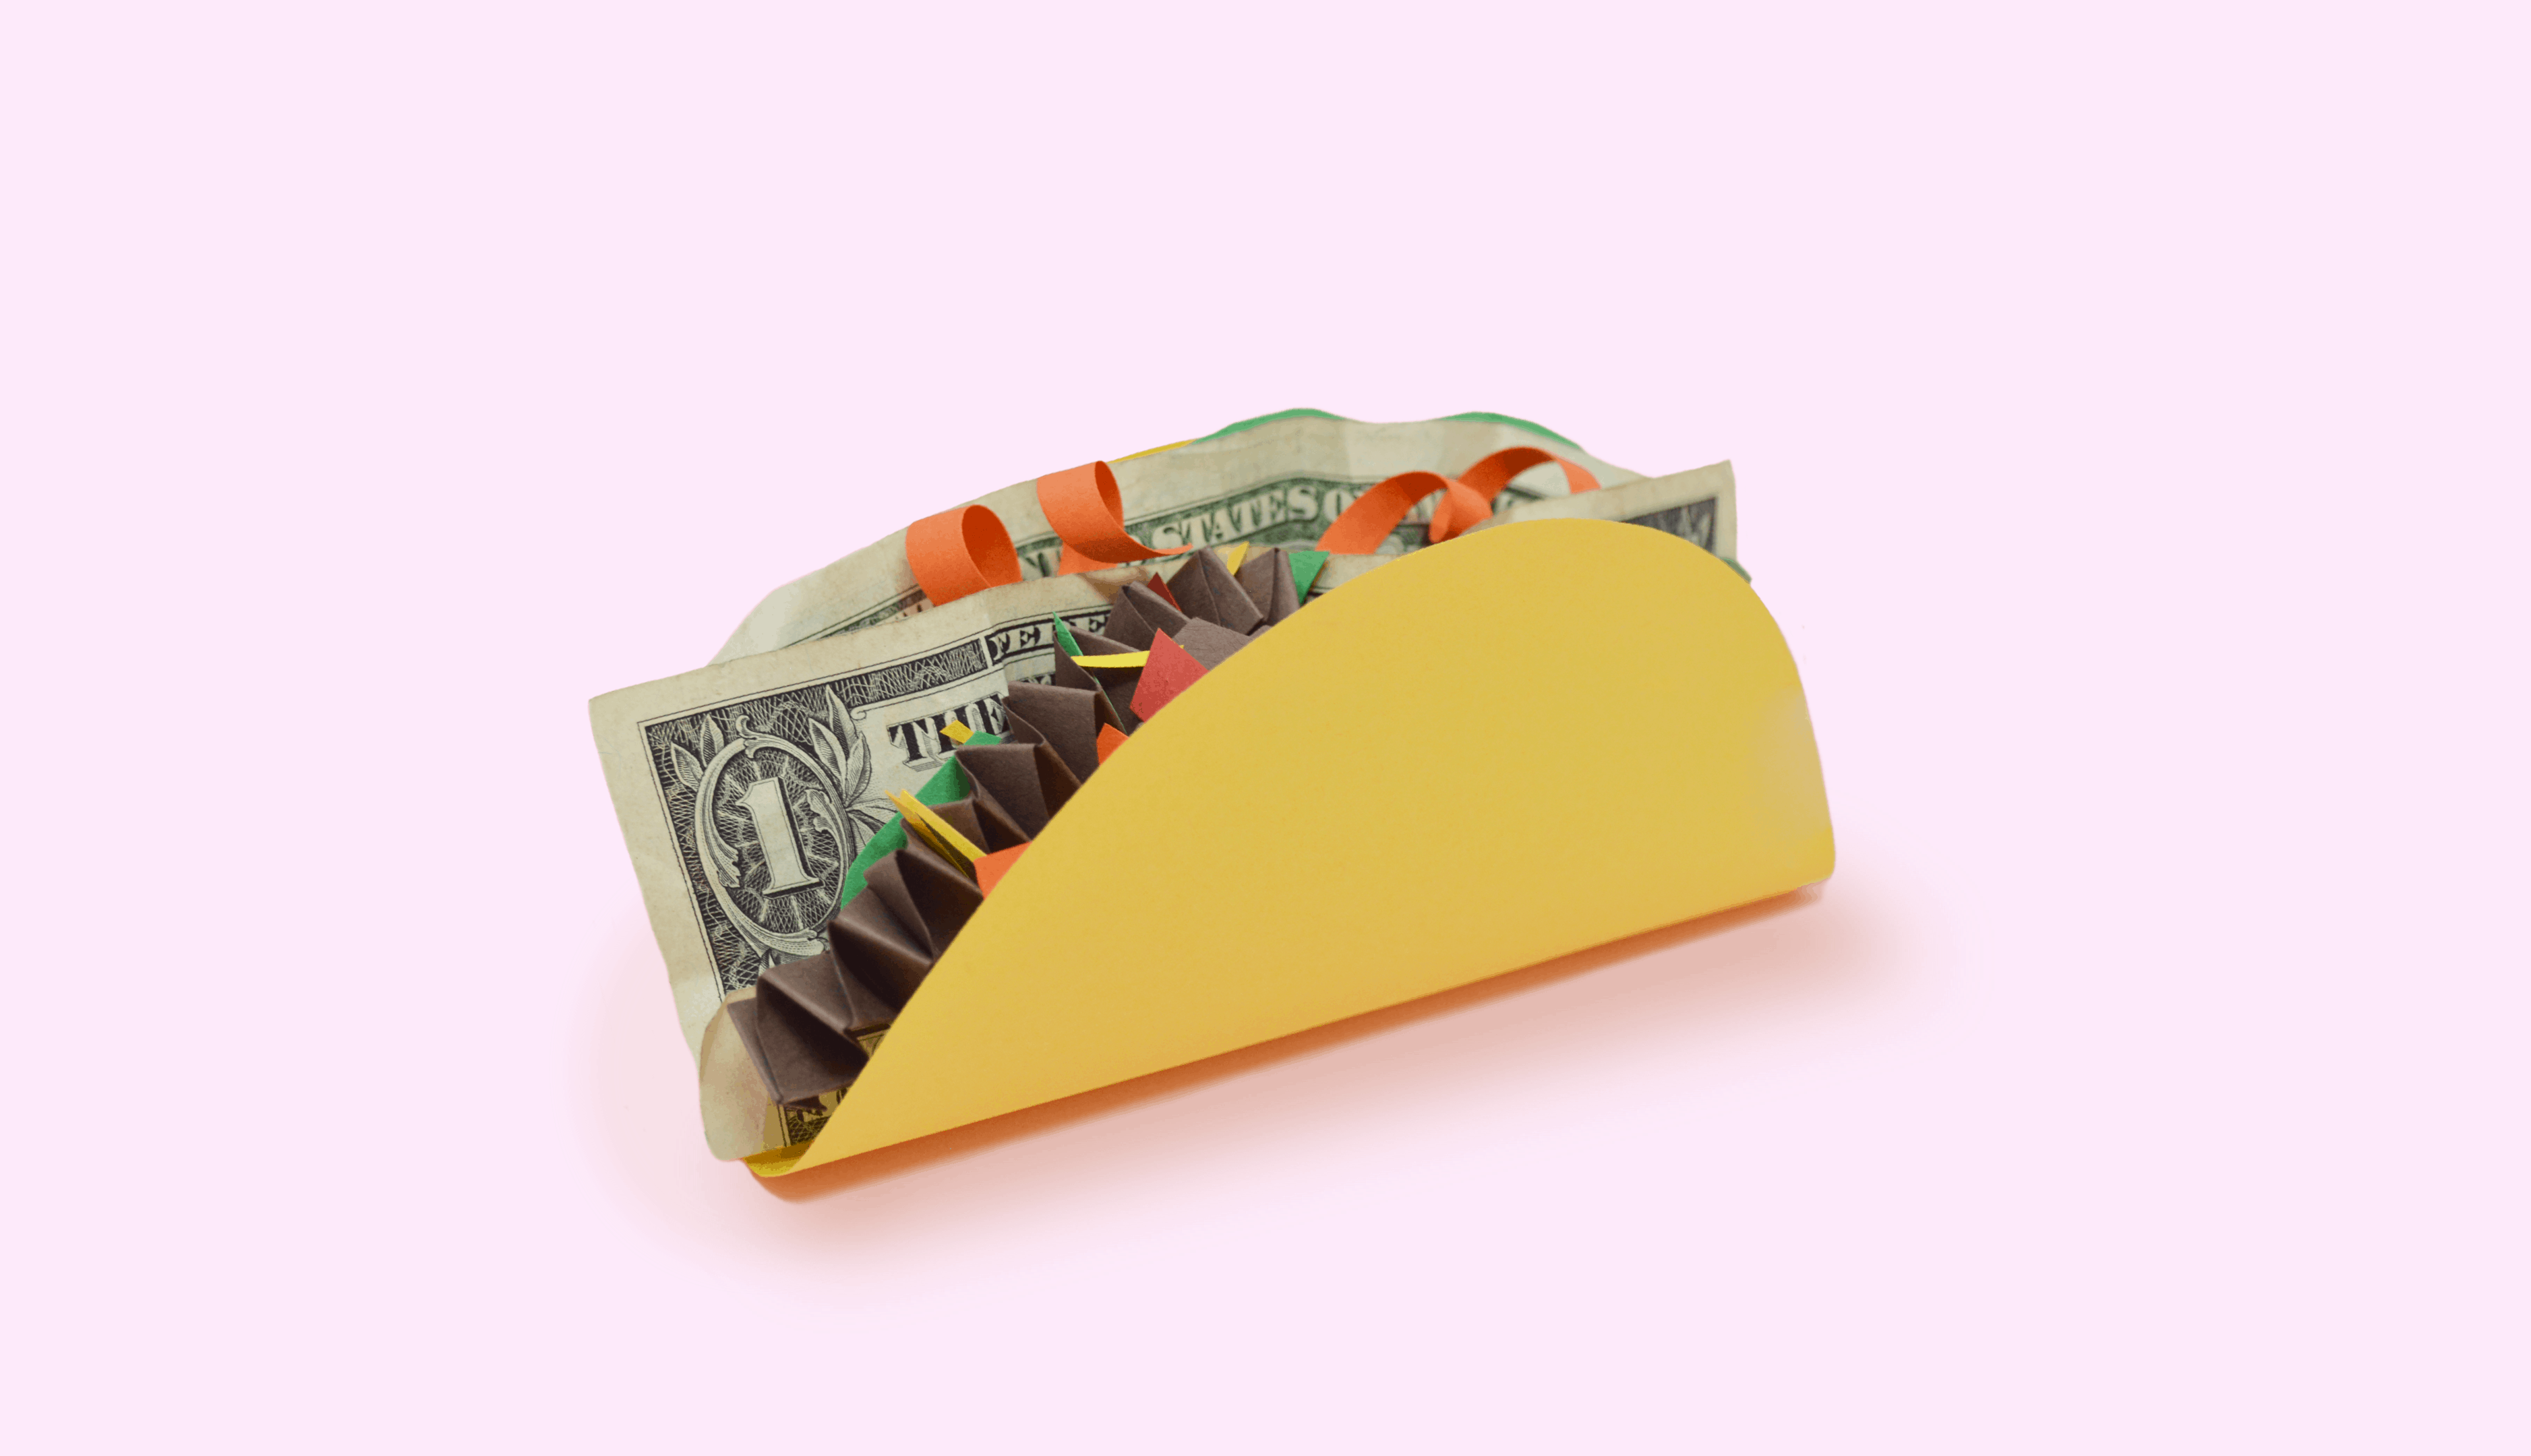 A taco filled with money.